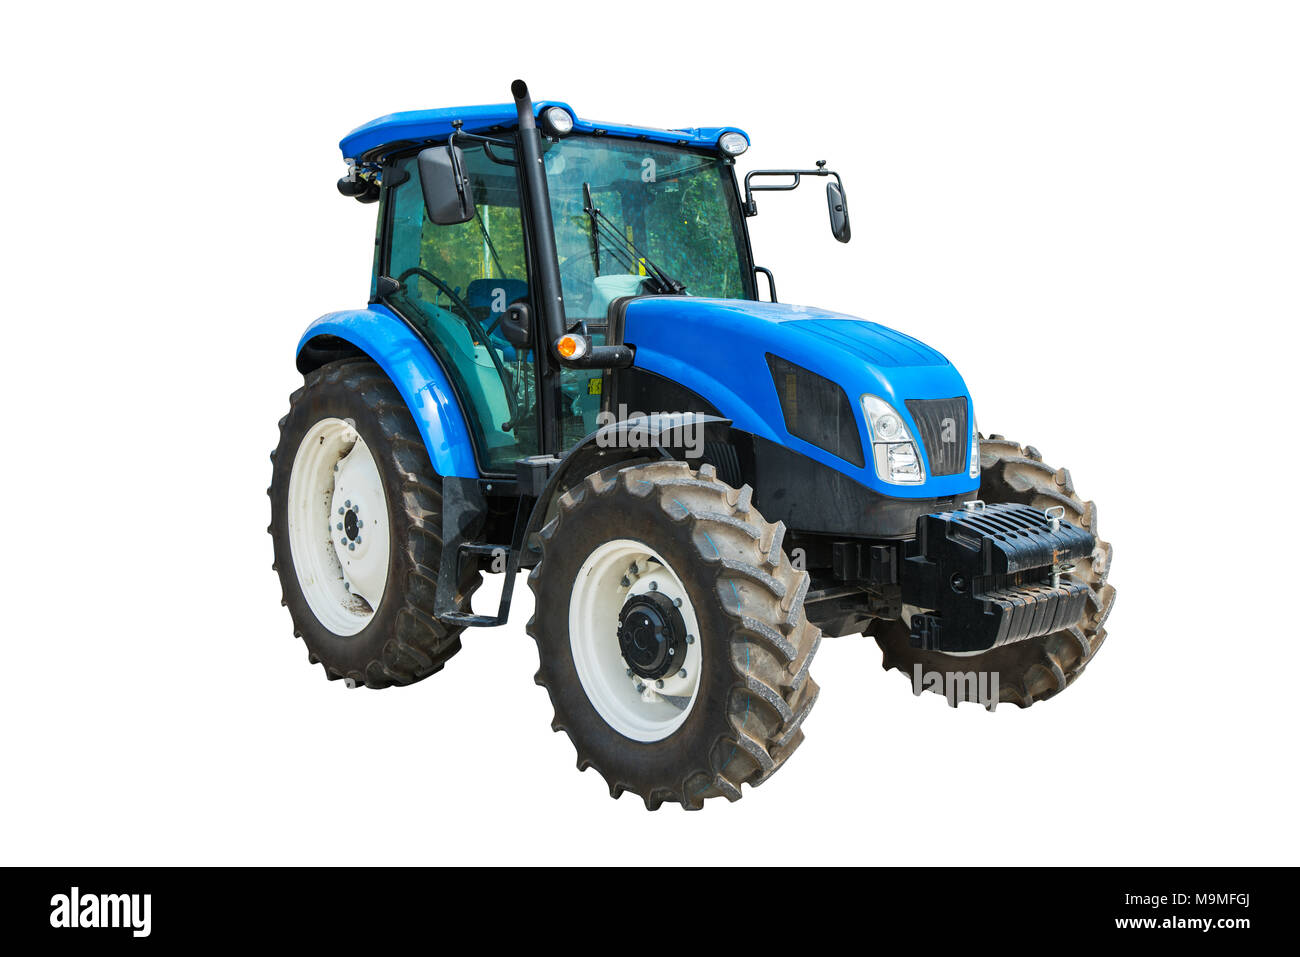 Modern agricultural tractor isolated on white background with clipping path. - Stock Image